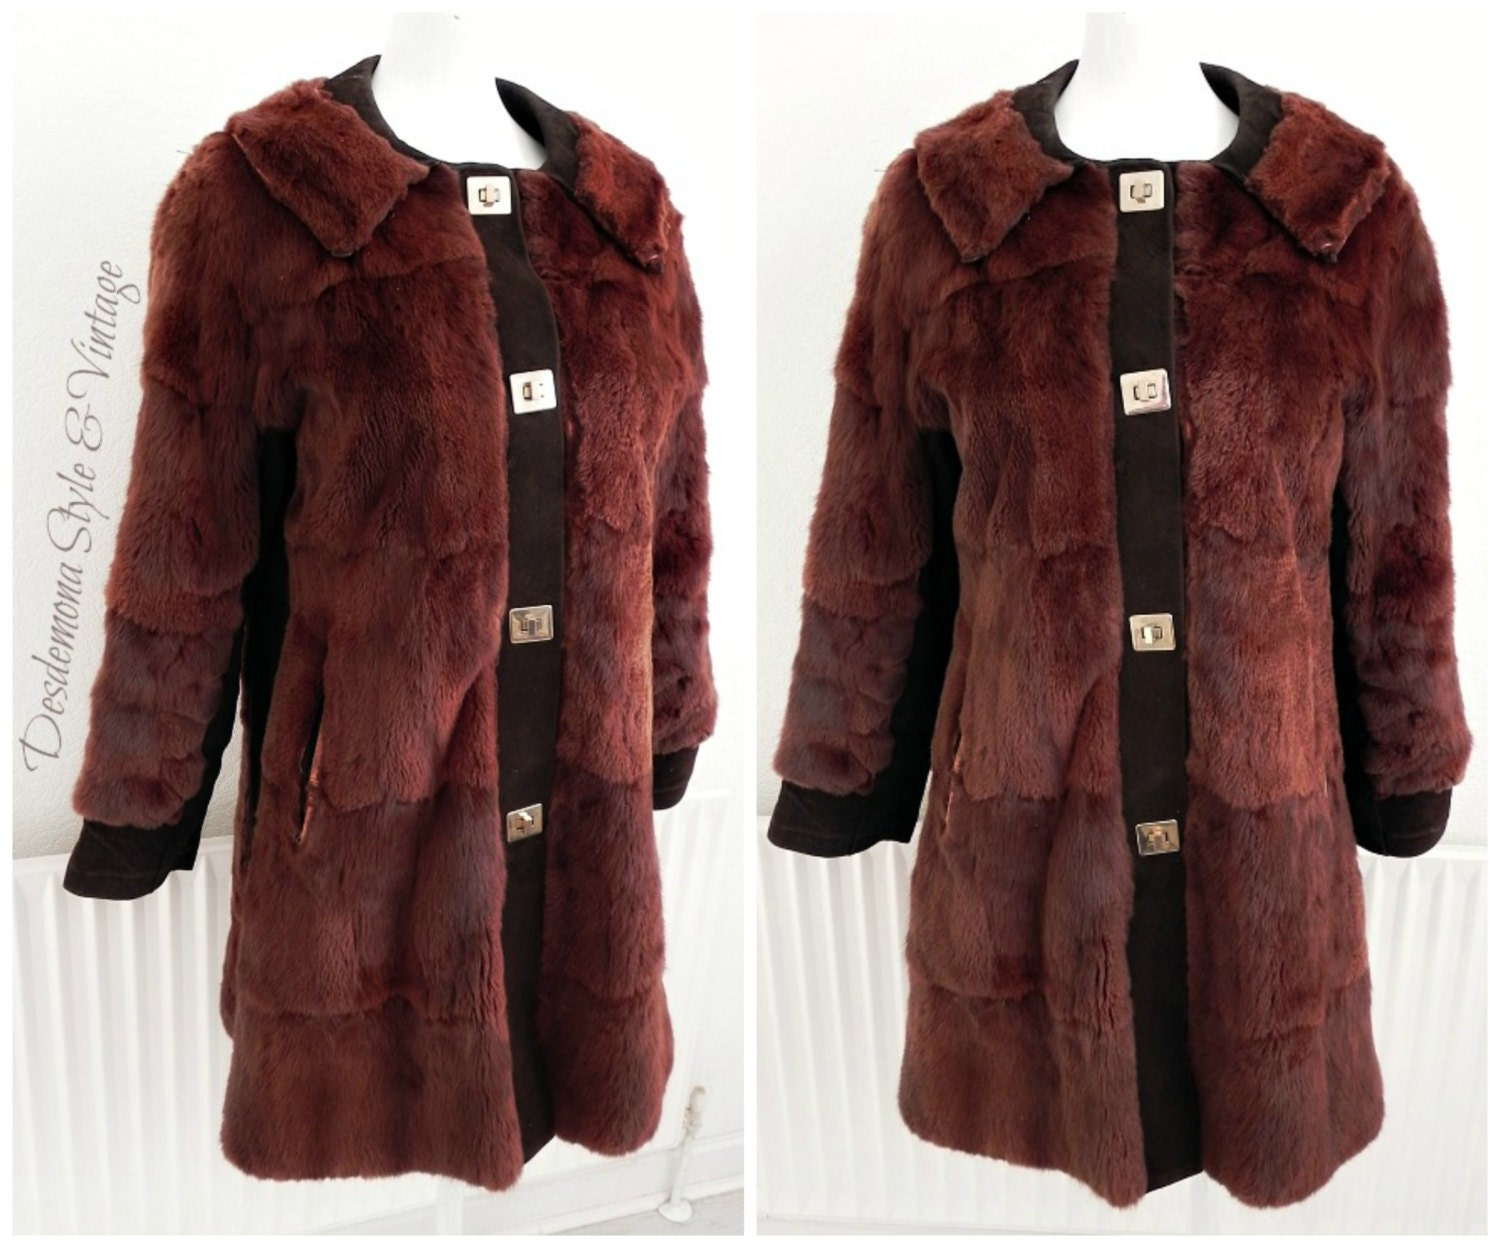 Vintage genuine 1960s 1970s fur coat with collar twist clasps MOD real sixties spage age suede TV Film Stage costume winter modernist